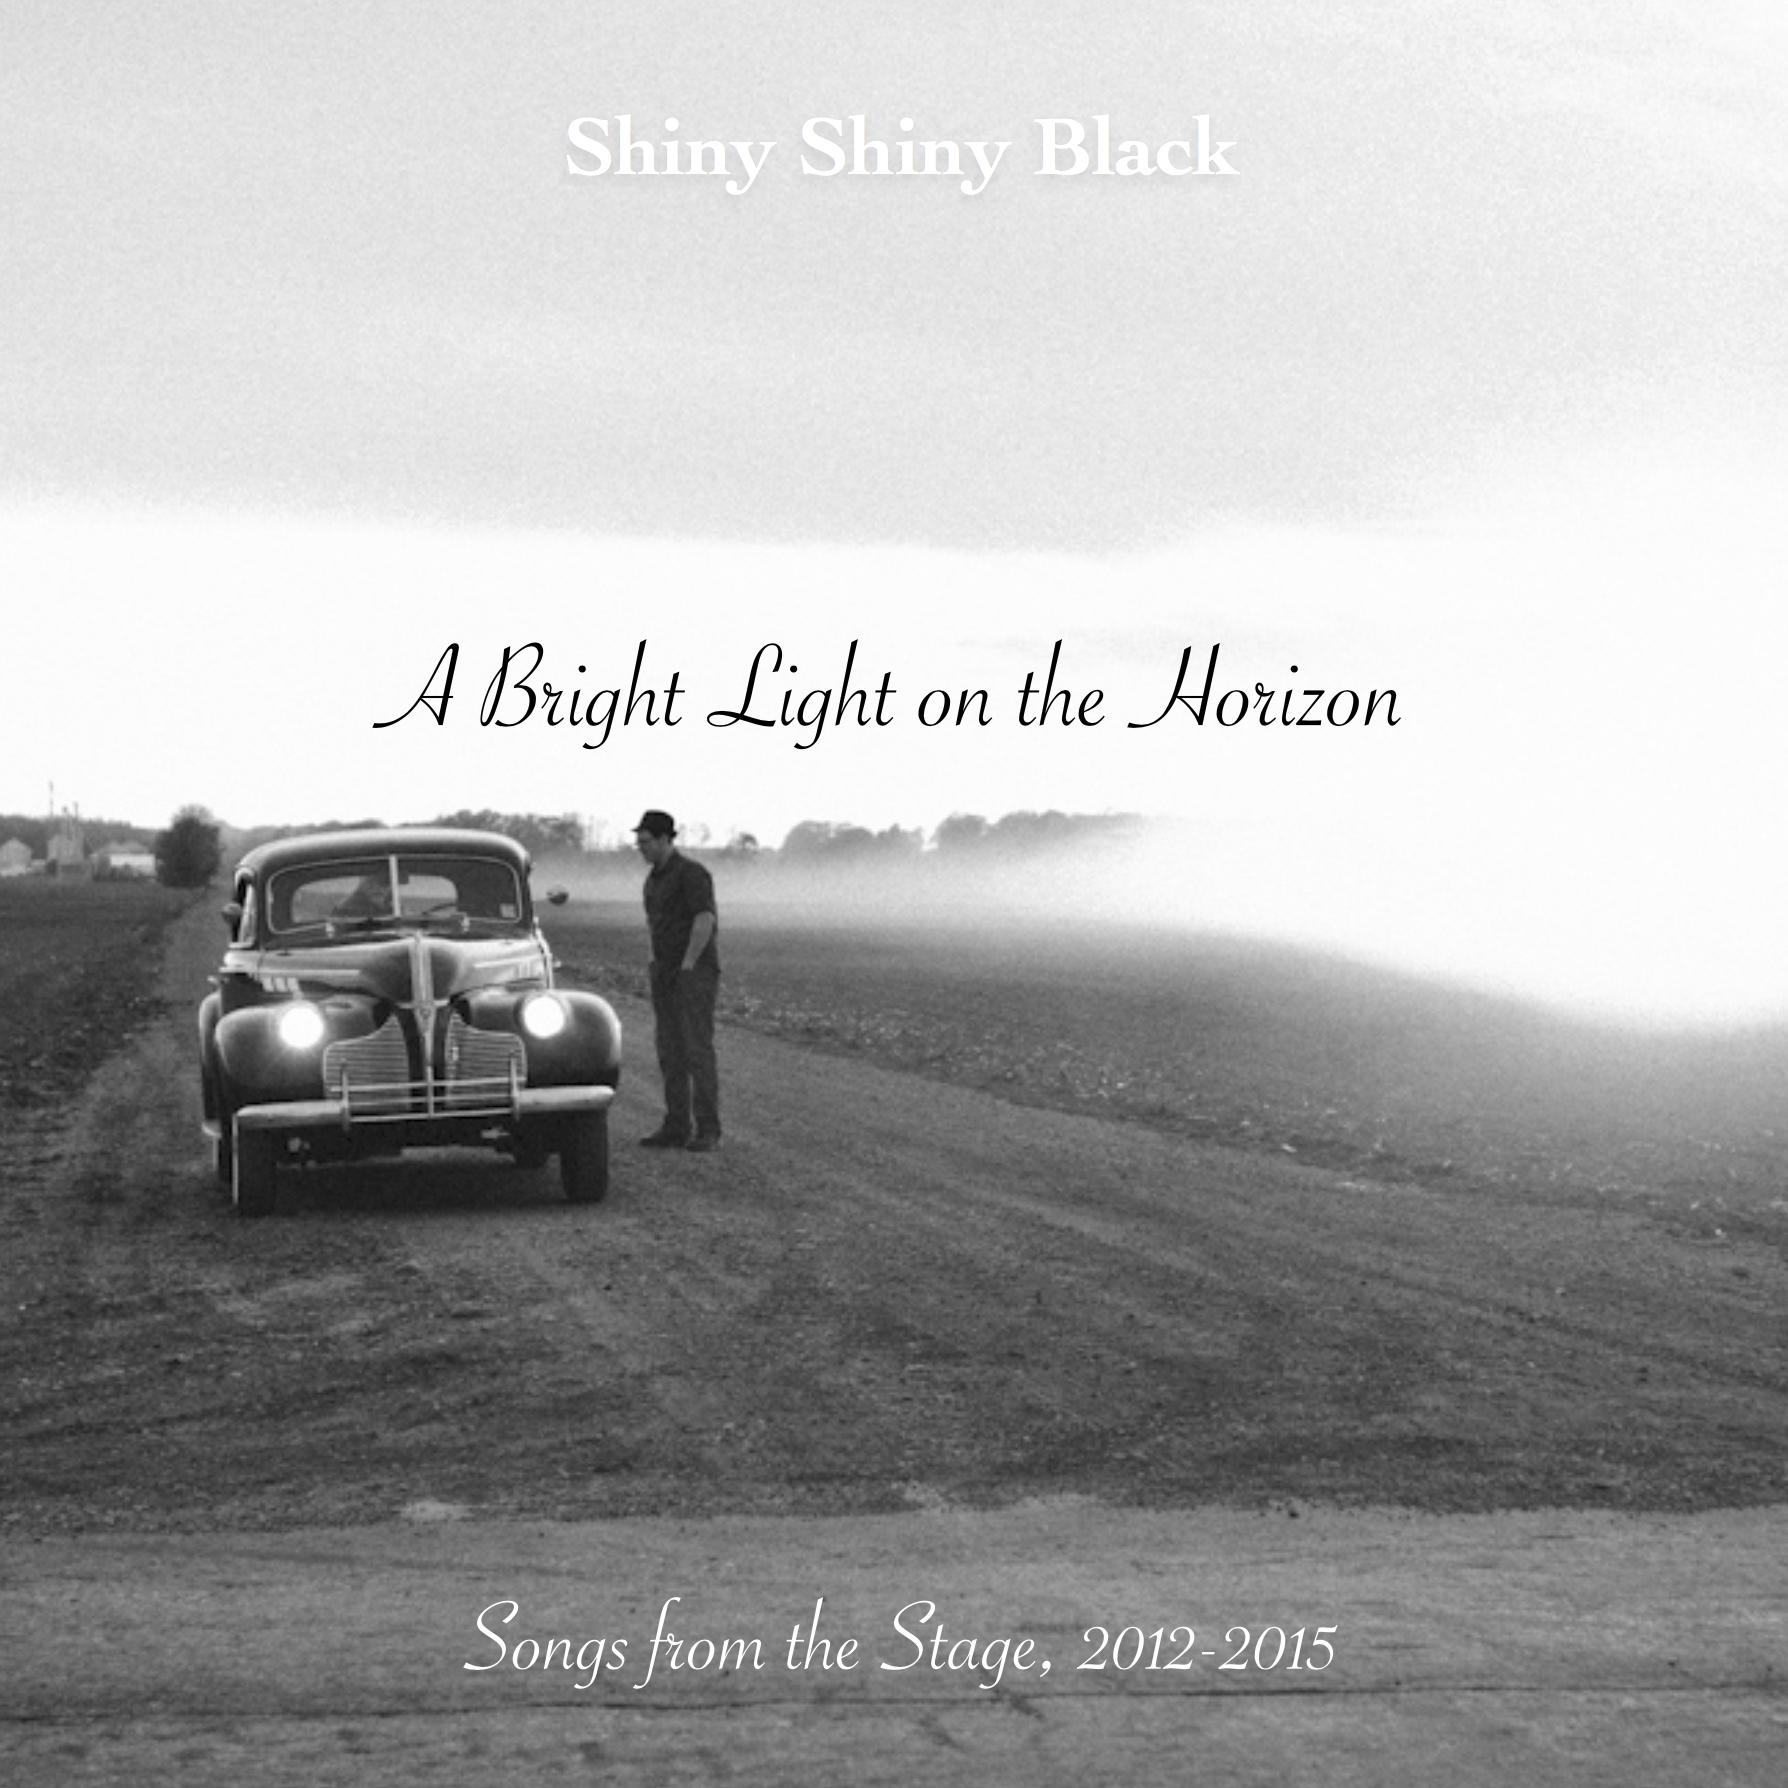 A Bright Light on the Horizon - Shiny Shiny Black Live Album